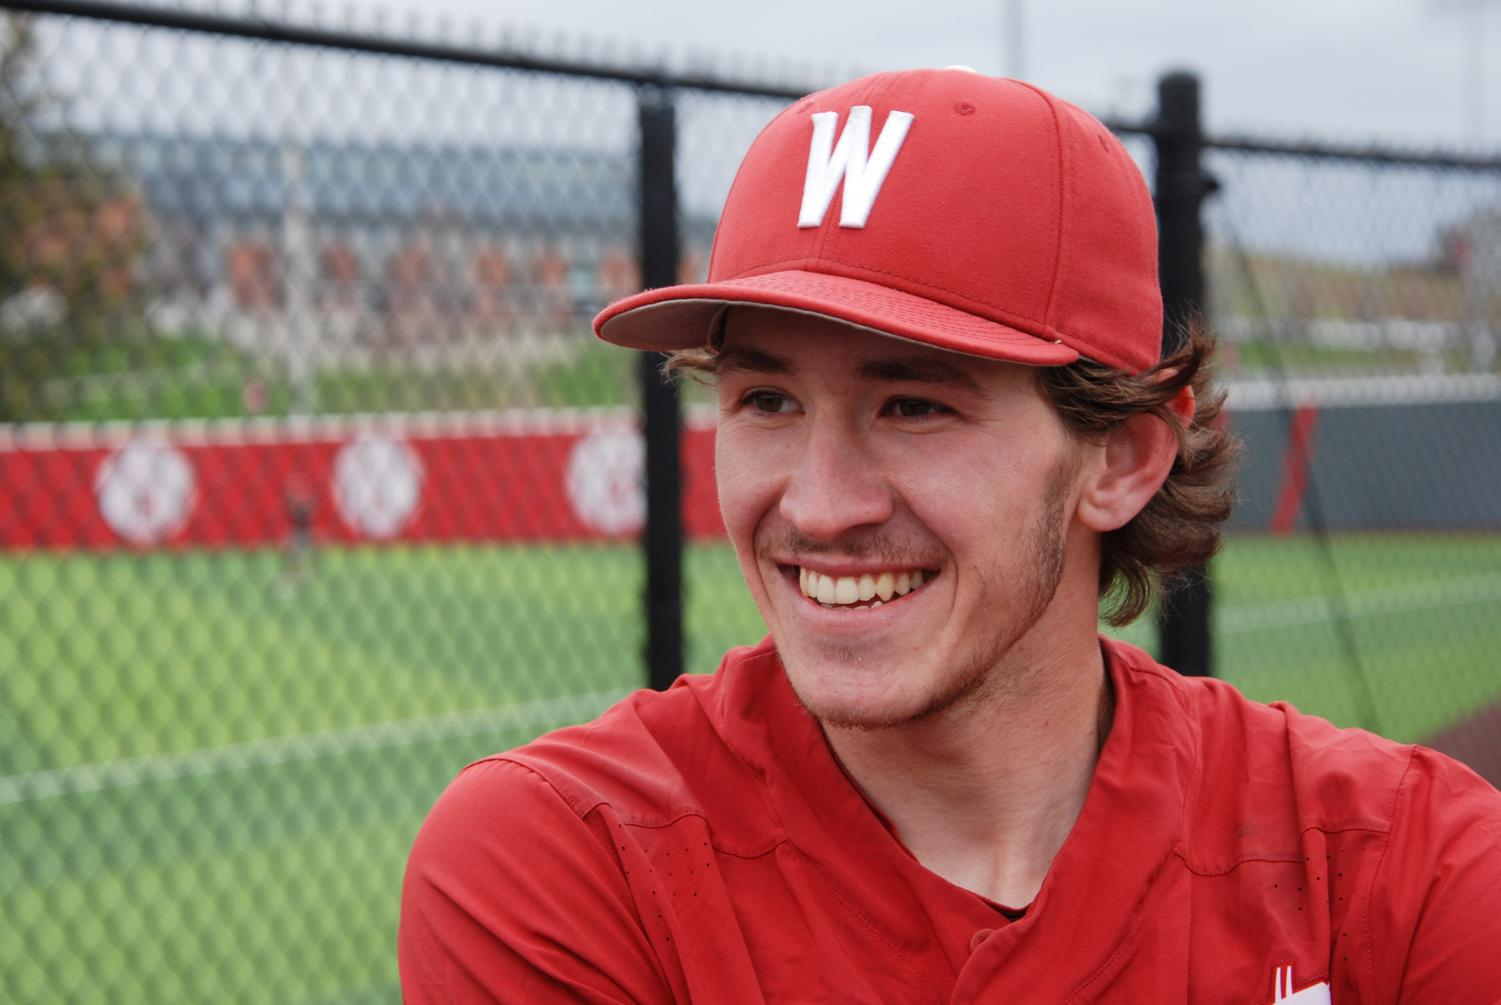 Junior infielder Dillon Plew discusses his mother's positive impact on his time playing baseball on Wednesday at Bailey-Brayton Field.